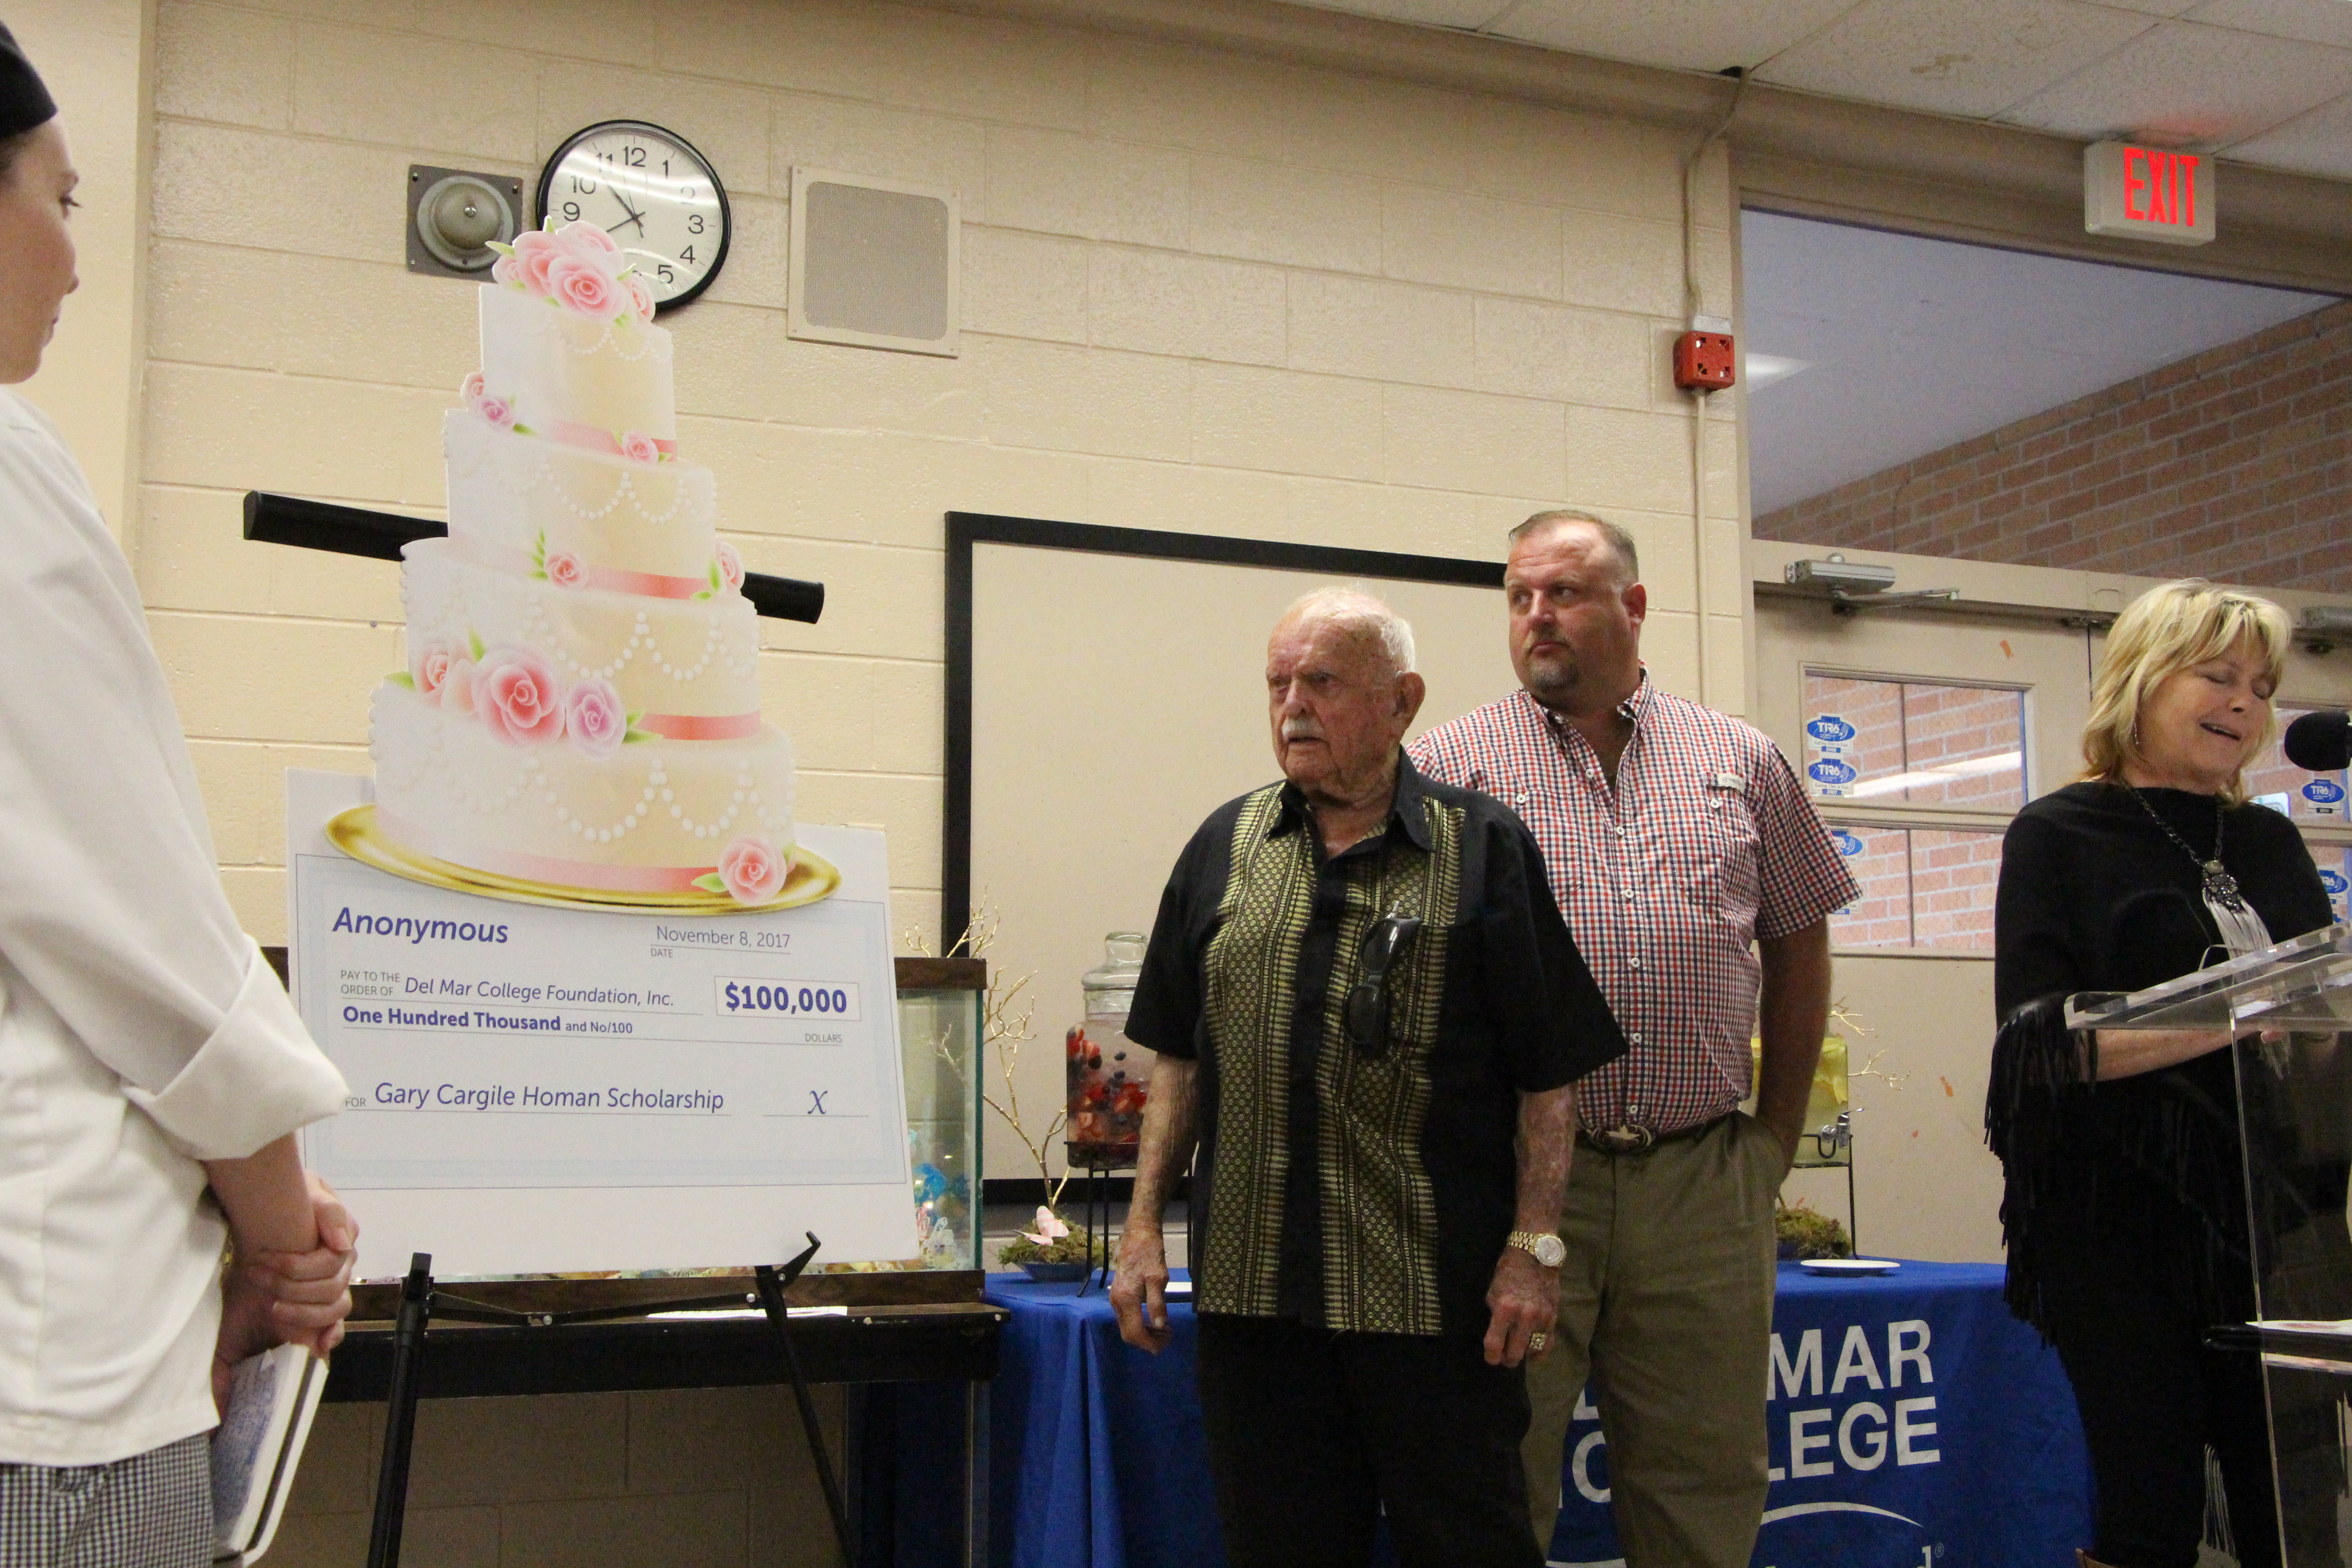 Gus Cargile (from left) and his grandson, Mike Homan, look on as Mary McQueen, with the DMC Foundation, announces a $100,000 donation made in honor of Gus' daughter and Mike's Mom, Gary Homan, on Nov. 15 at West Campus.